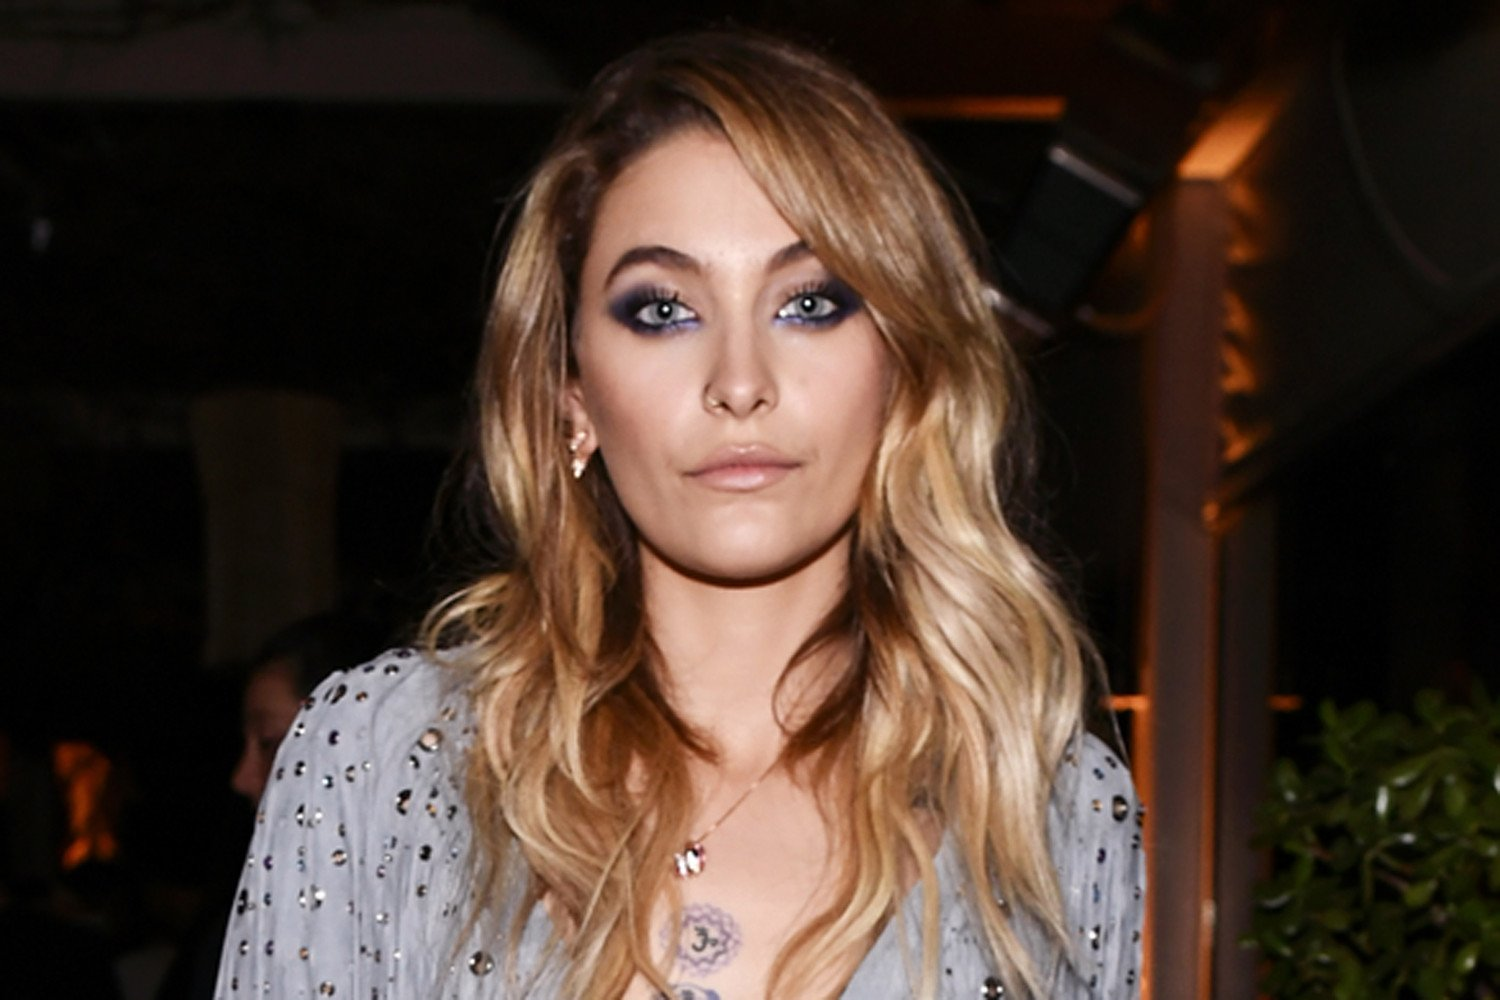 Paris Jackson goes from grunge to glam for Oscars weekend